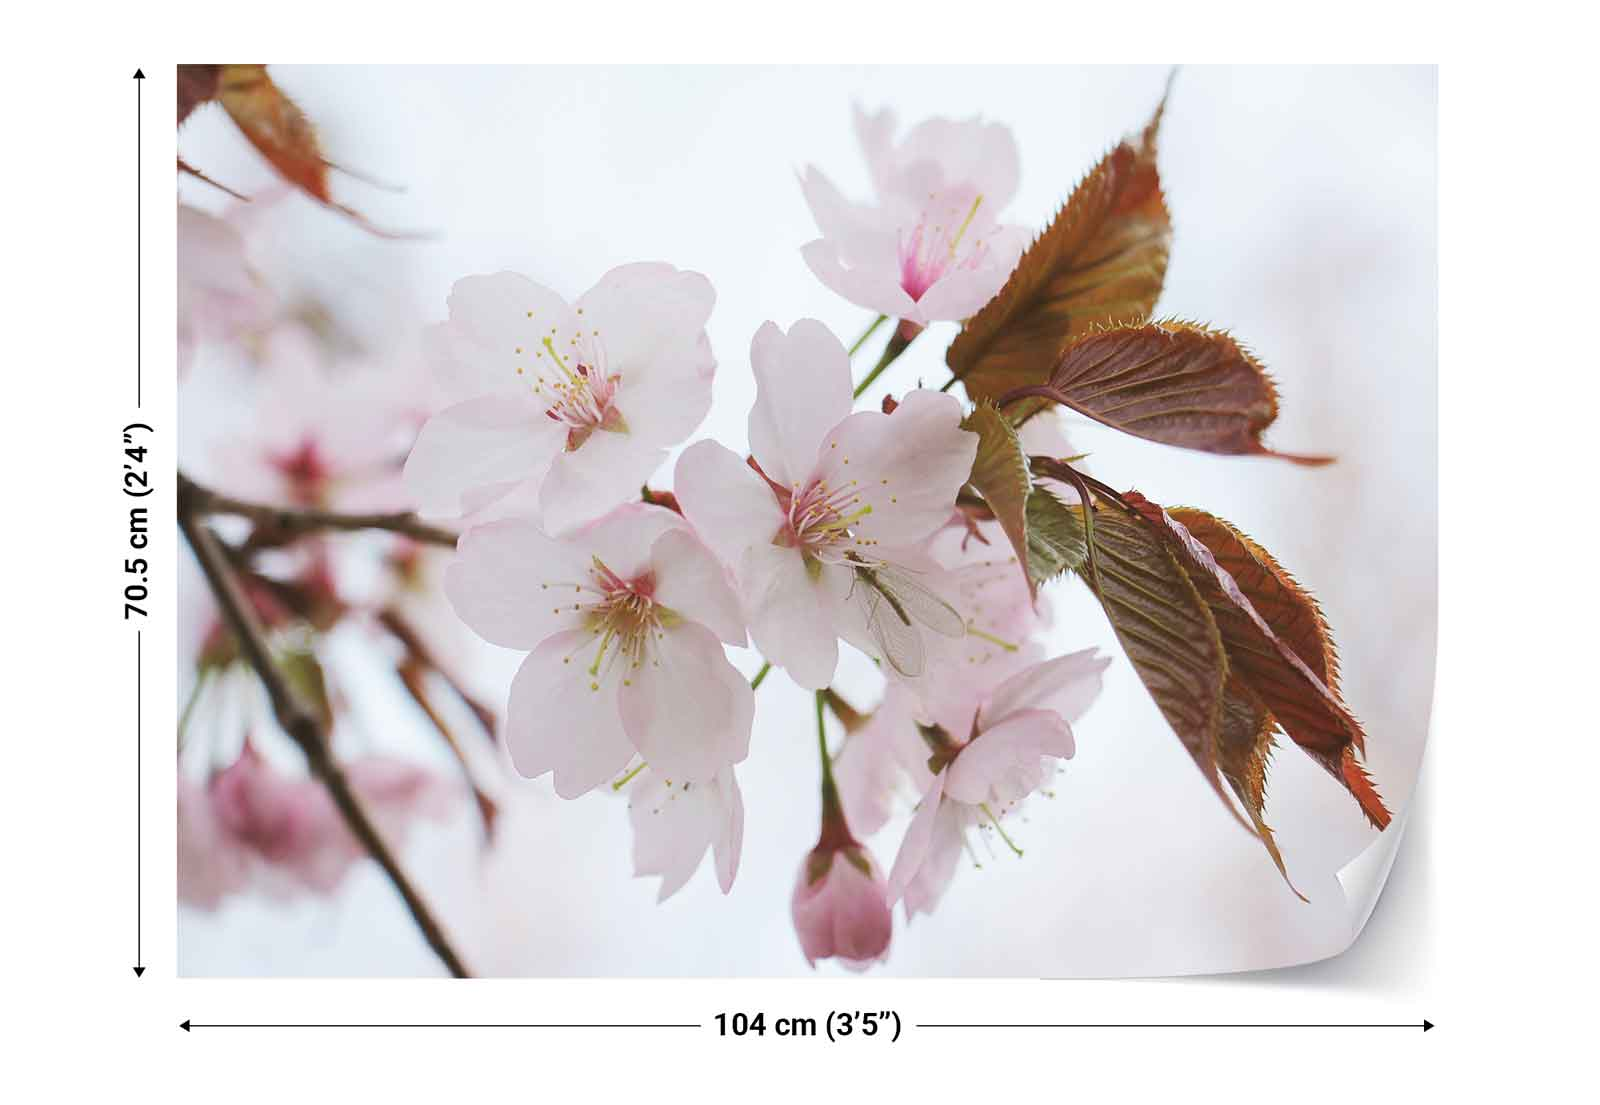 Cherry blossoms spring photo wallpaper wall mural fw 1035 for Cherry blossom wallpaper mural